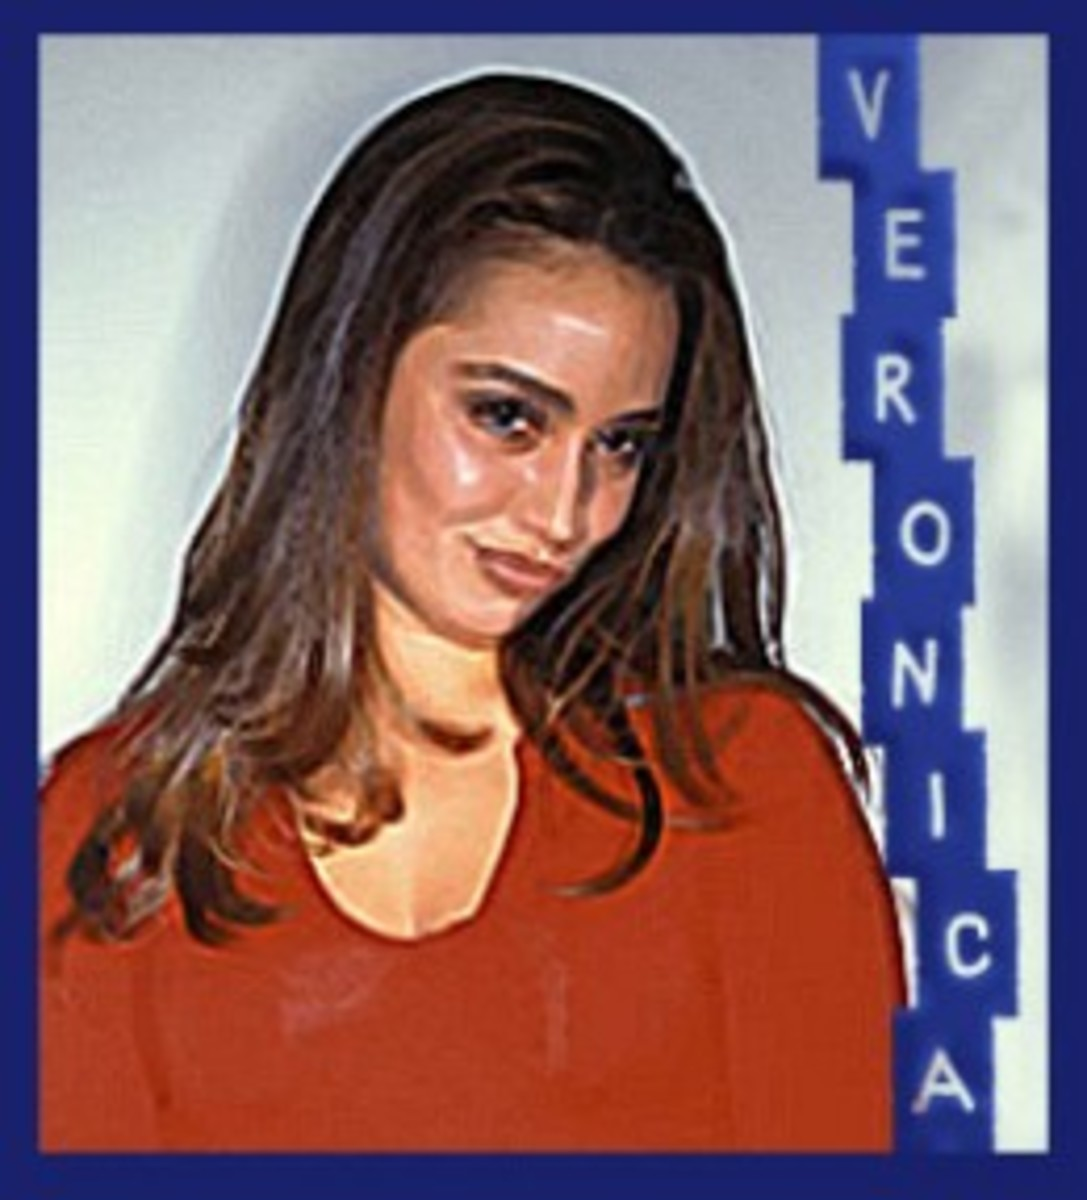 Veronica in Her Road Rules Days